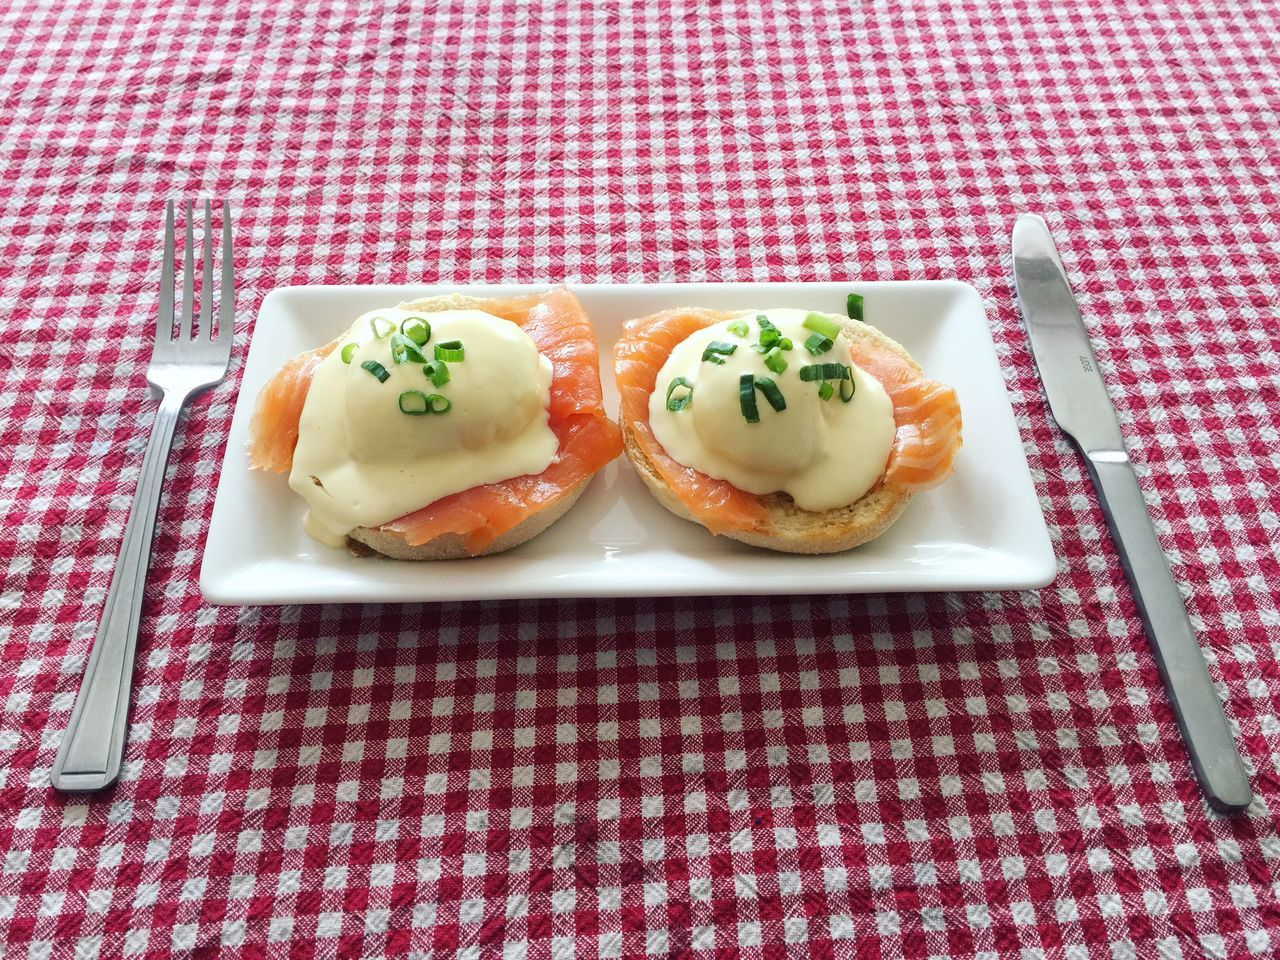 Eggs Benedict with smoked salmon breakfast Food And Drink Food Freshness Healthy Eating Tablecloth Homecooked English Muffins Breakfast No People Plate Eggs Benedict Smoke Salmon Gourmet Gourmet Cooking Gourmet Food Hollandaise Sauce First Eyeem Photo